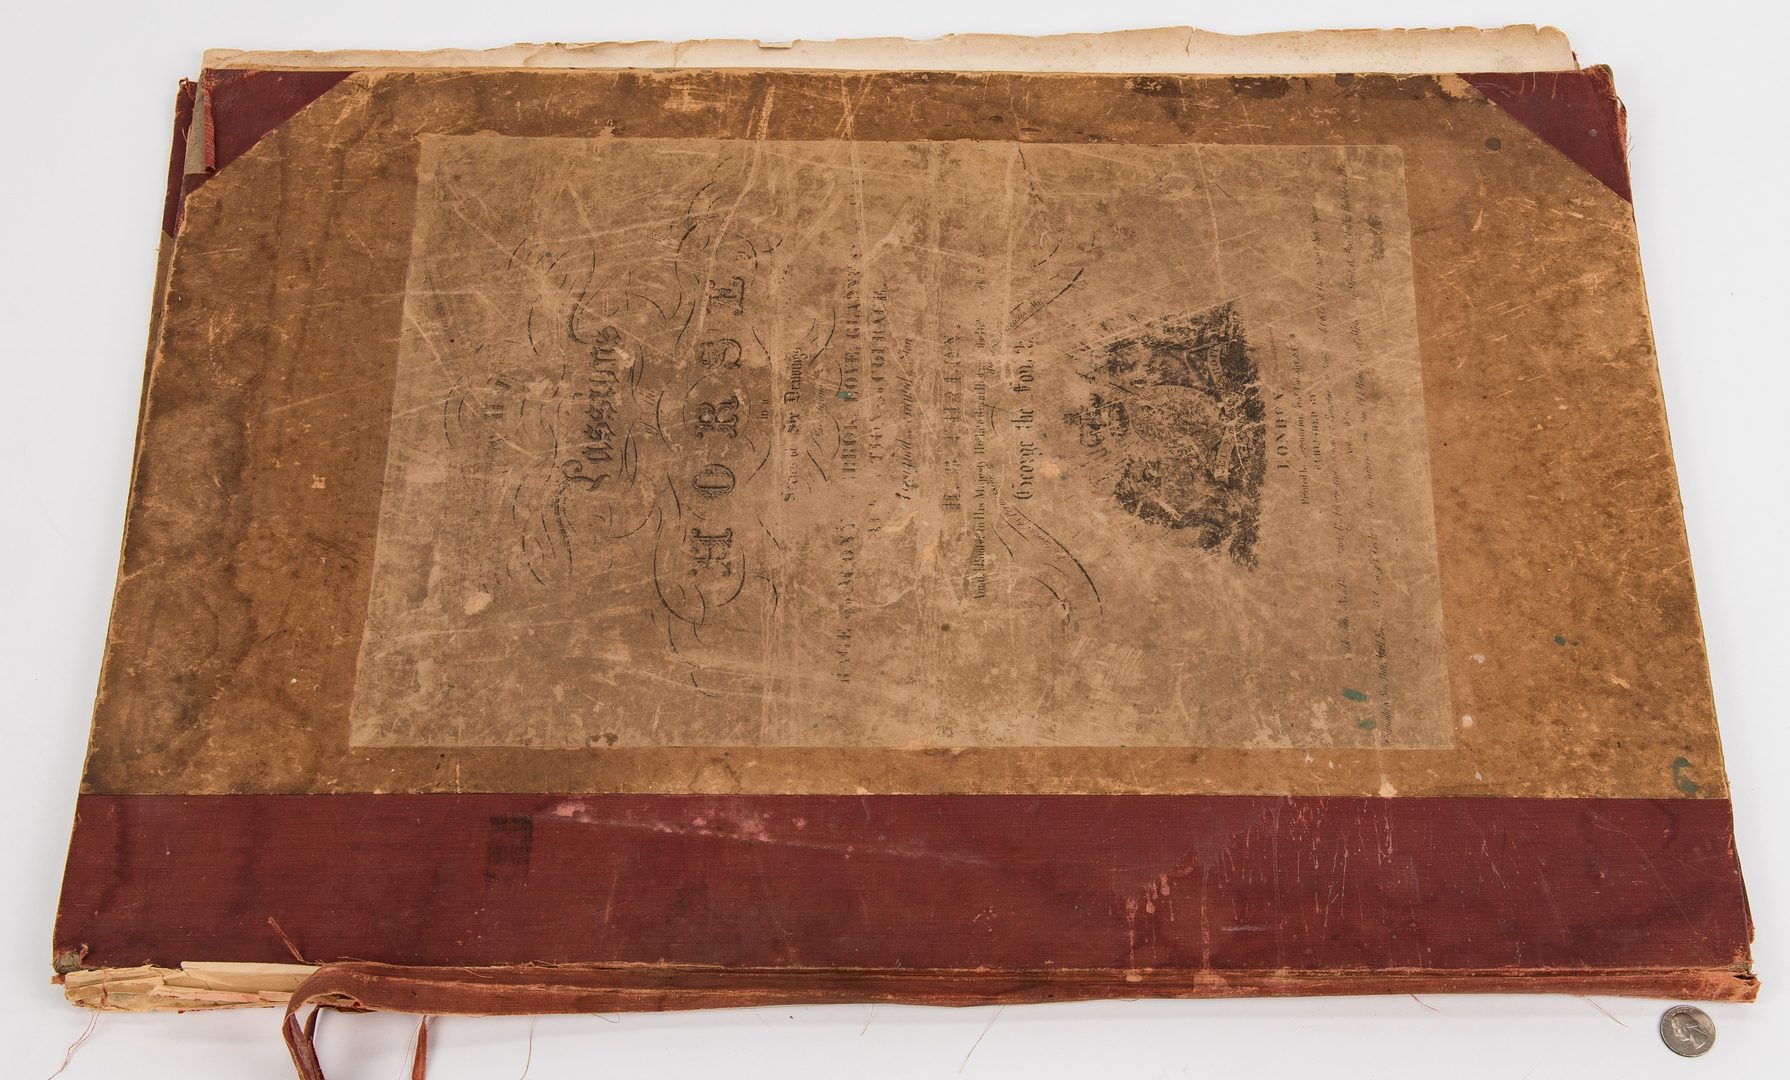 Lot 117: 1827 Folio of horse prints: Passions of the Horse